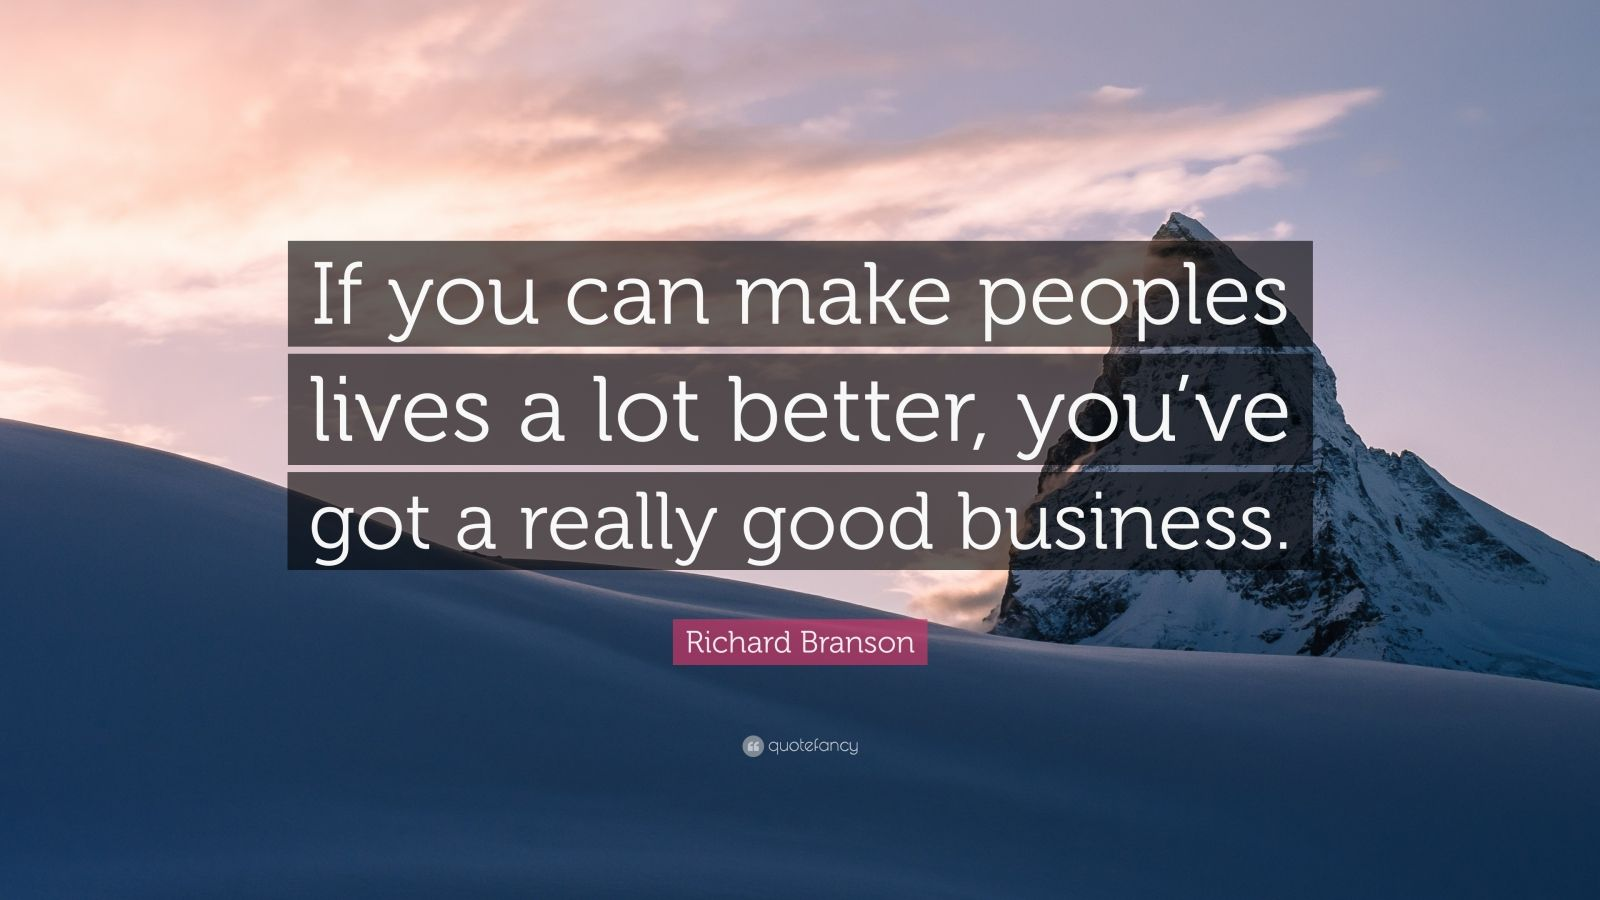 """Richard Branson Quote: """"If you can make peoples lives a lot better, you've got a really good business."""""""